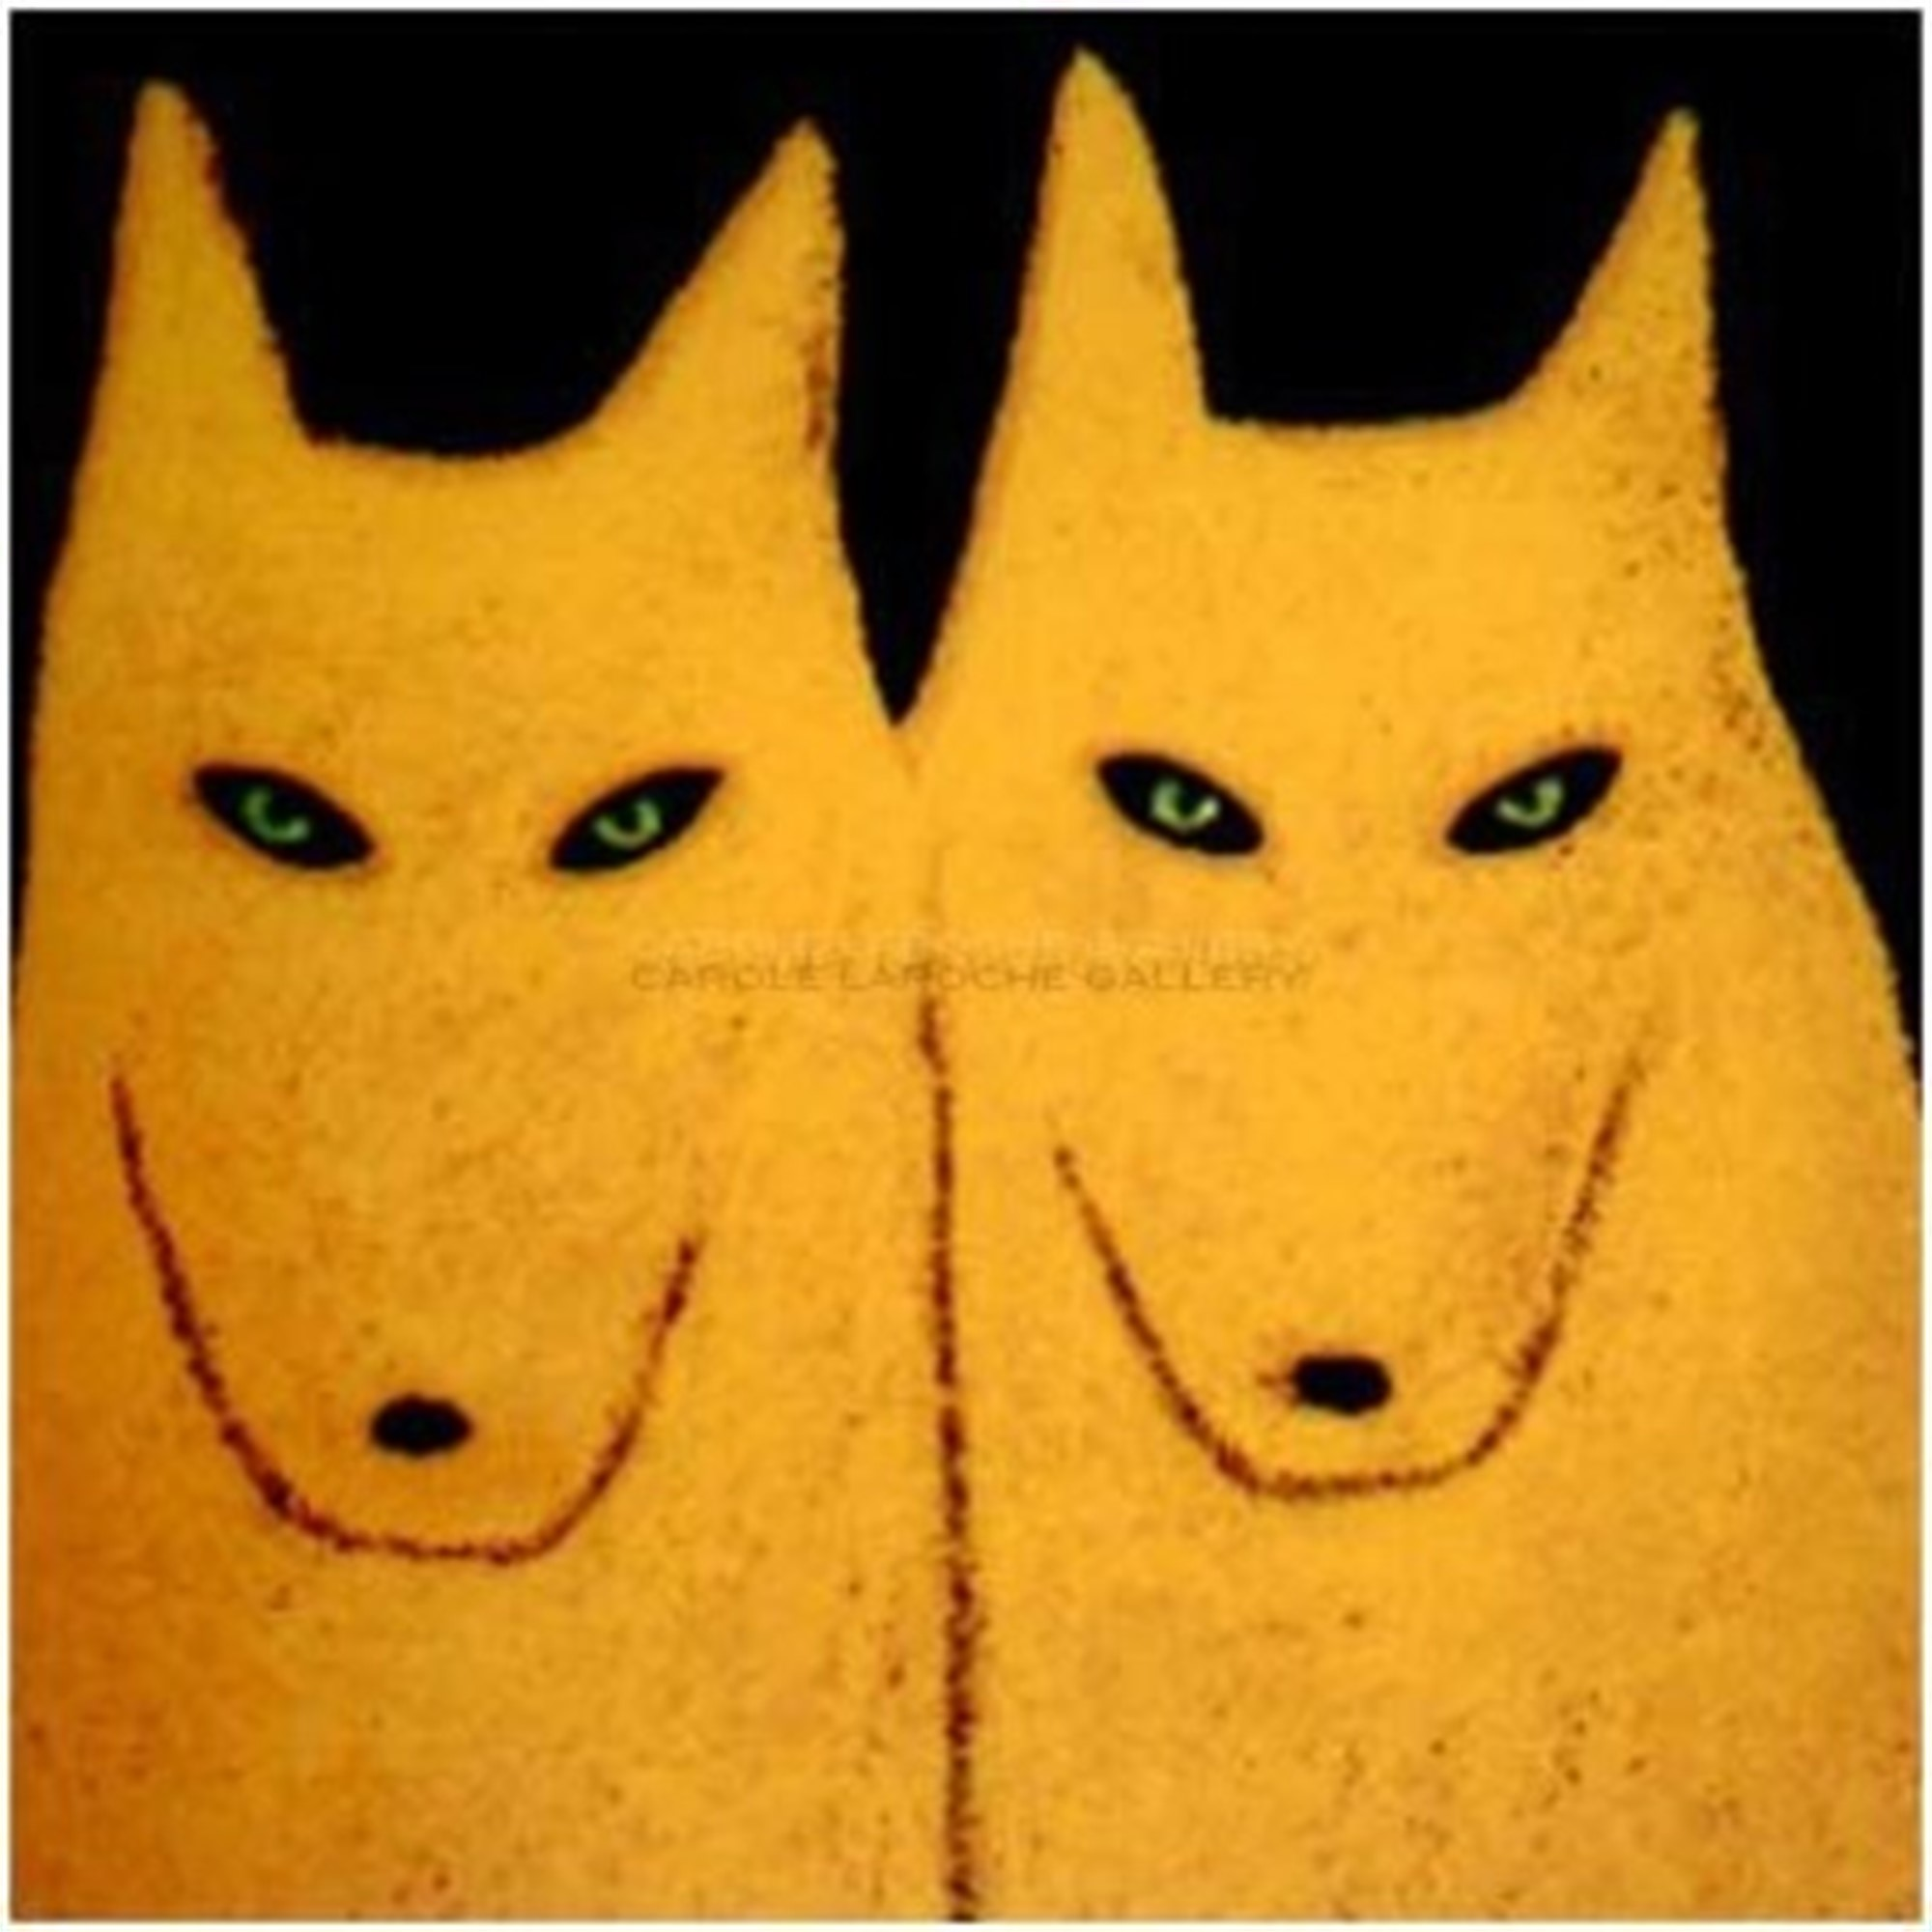 "TWO YELLOW WOLVES - limited edition giclee on paper w/frame size of 21""X21"" by Carole LaRoche"